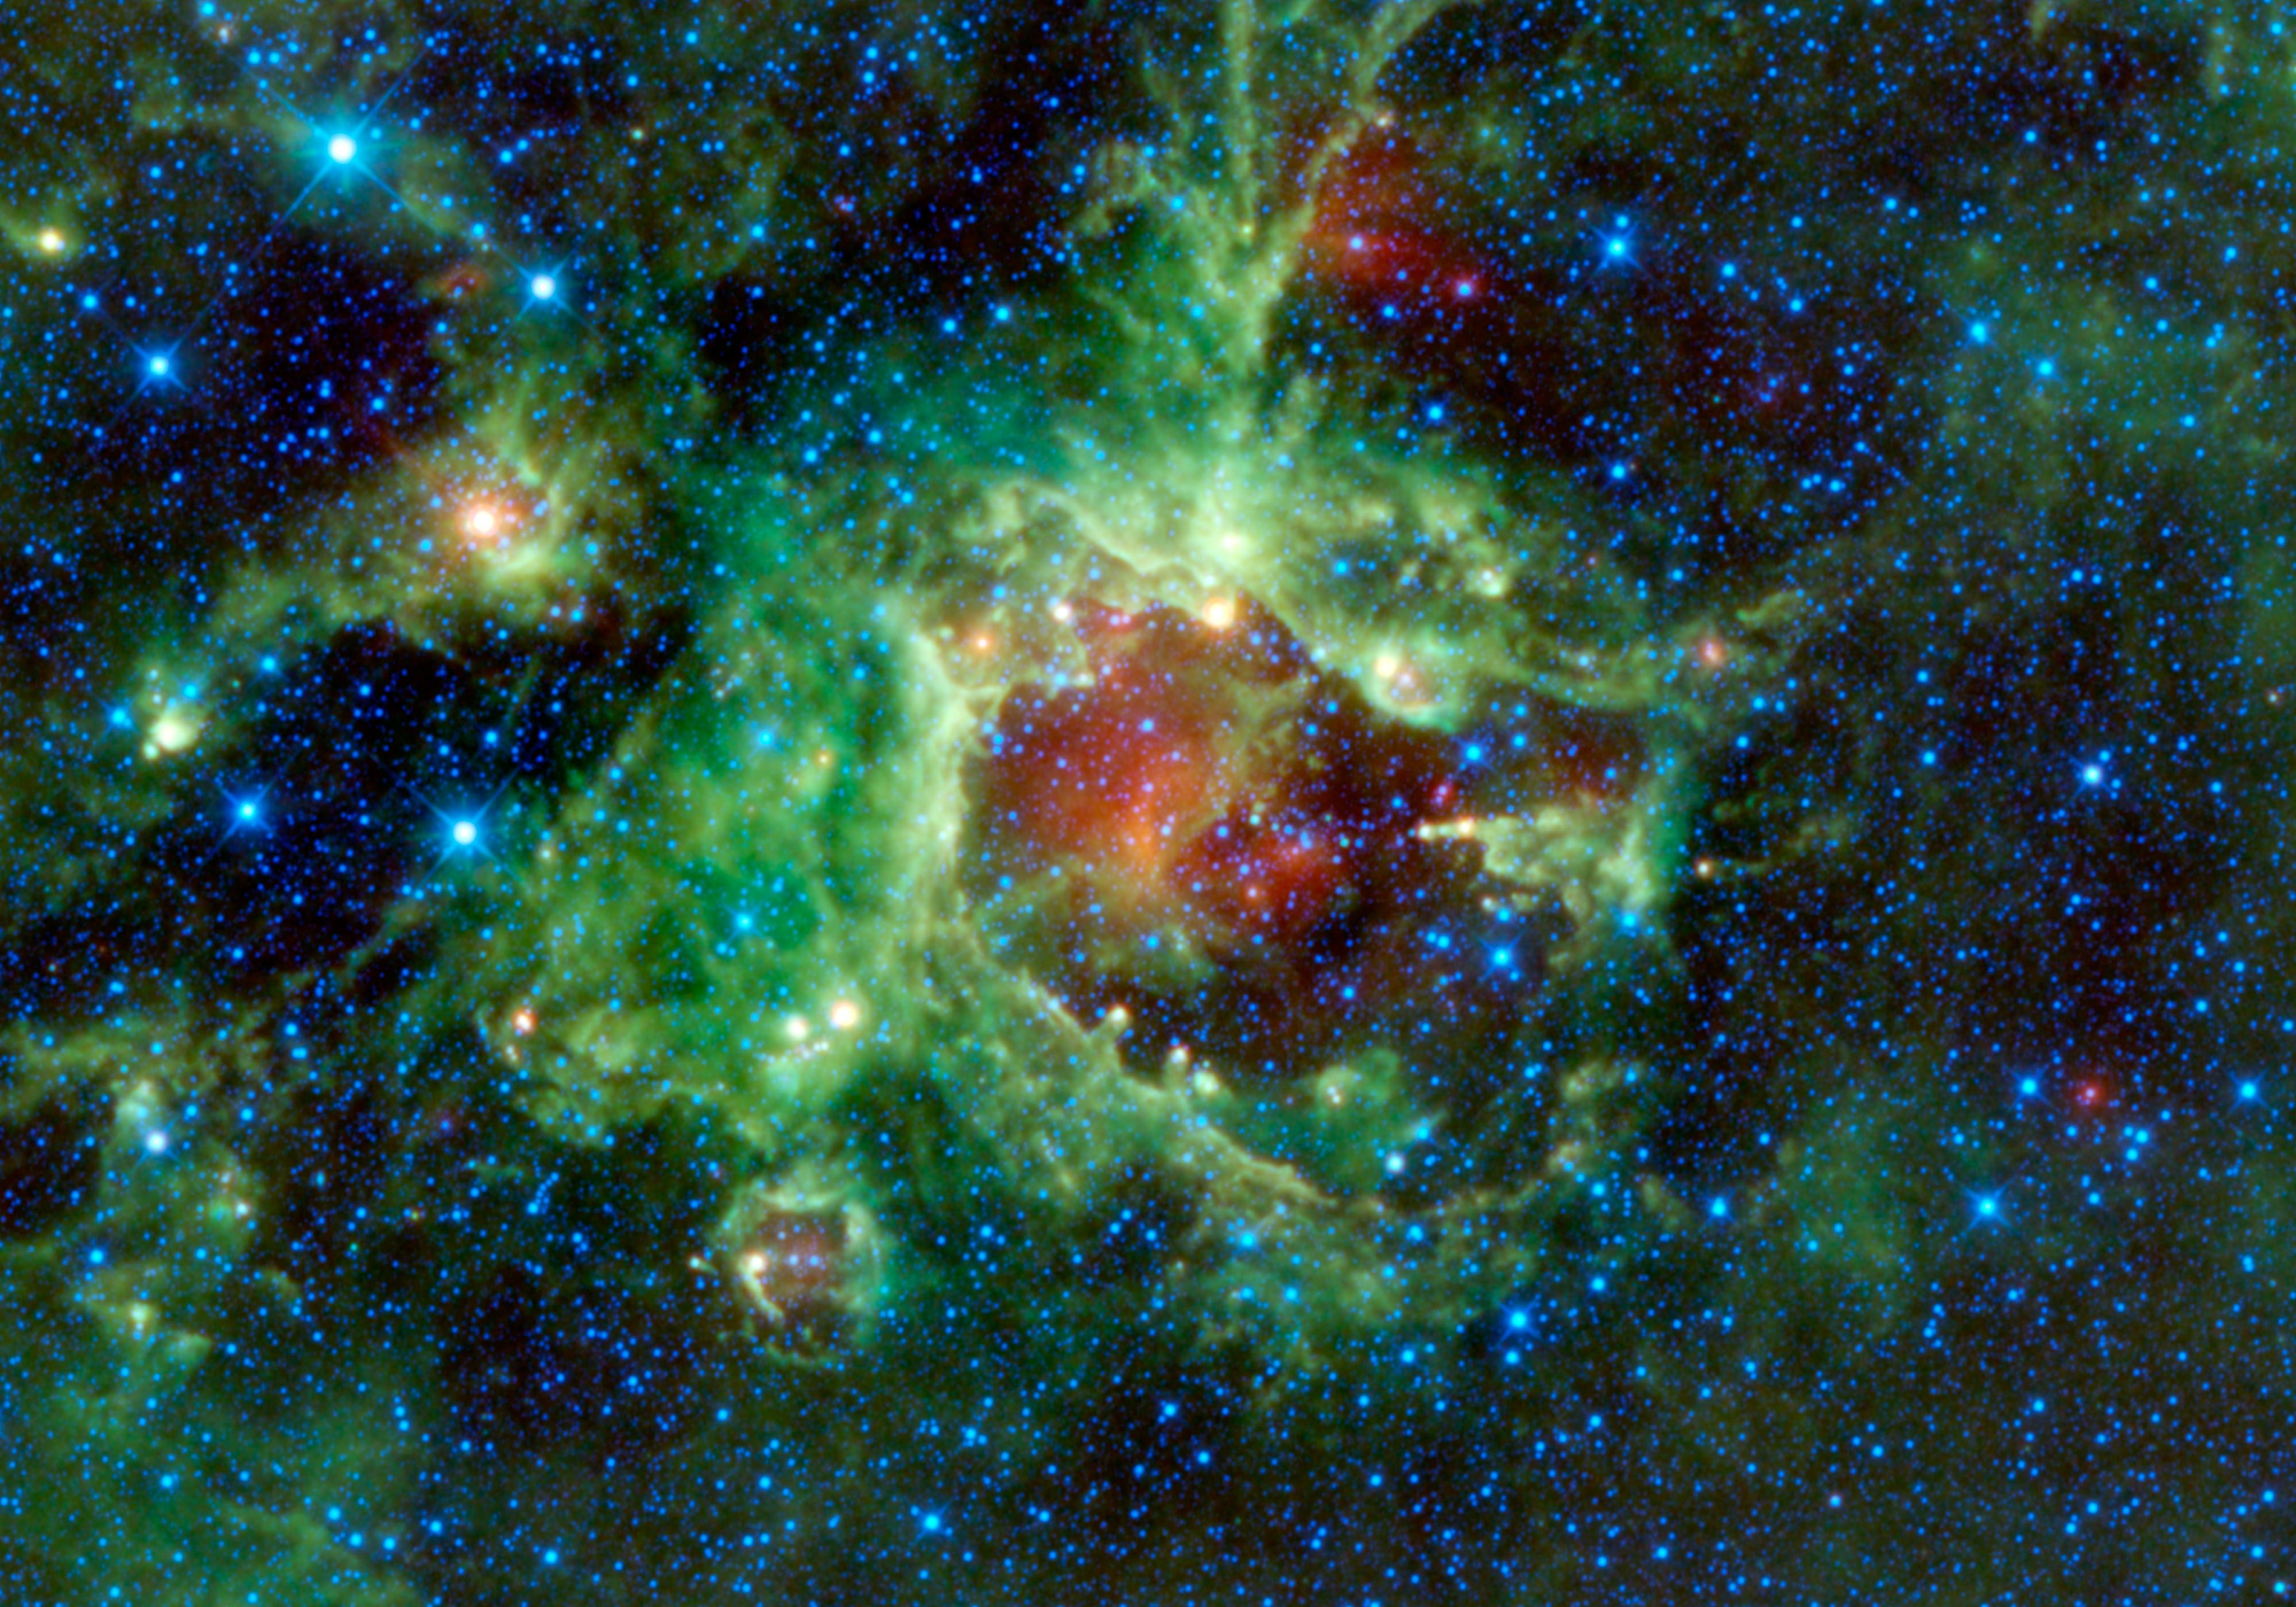 Space Images | Pointing a Finger at Star Formation